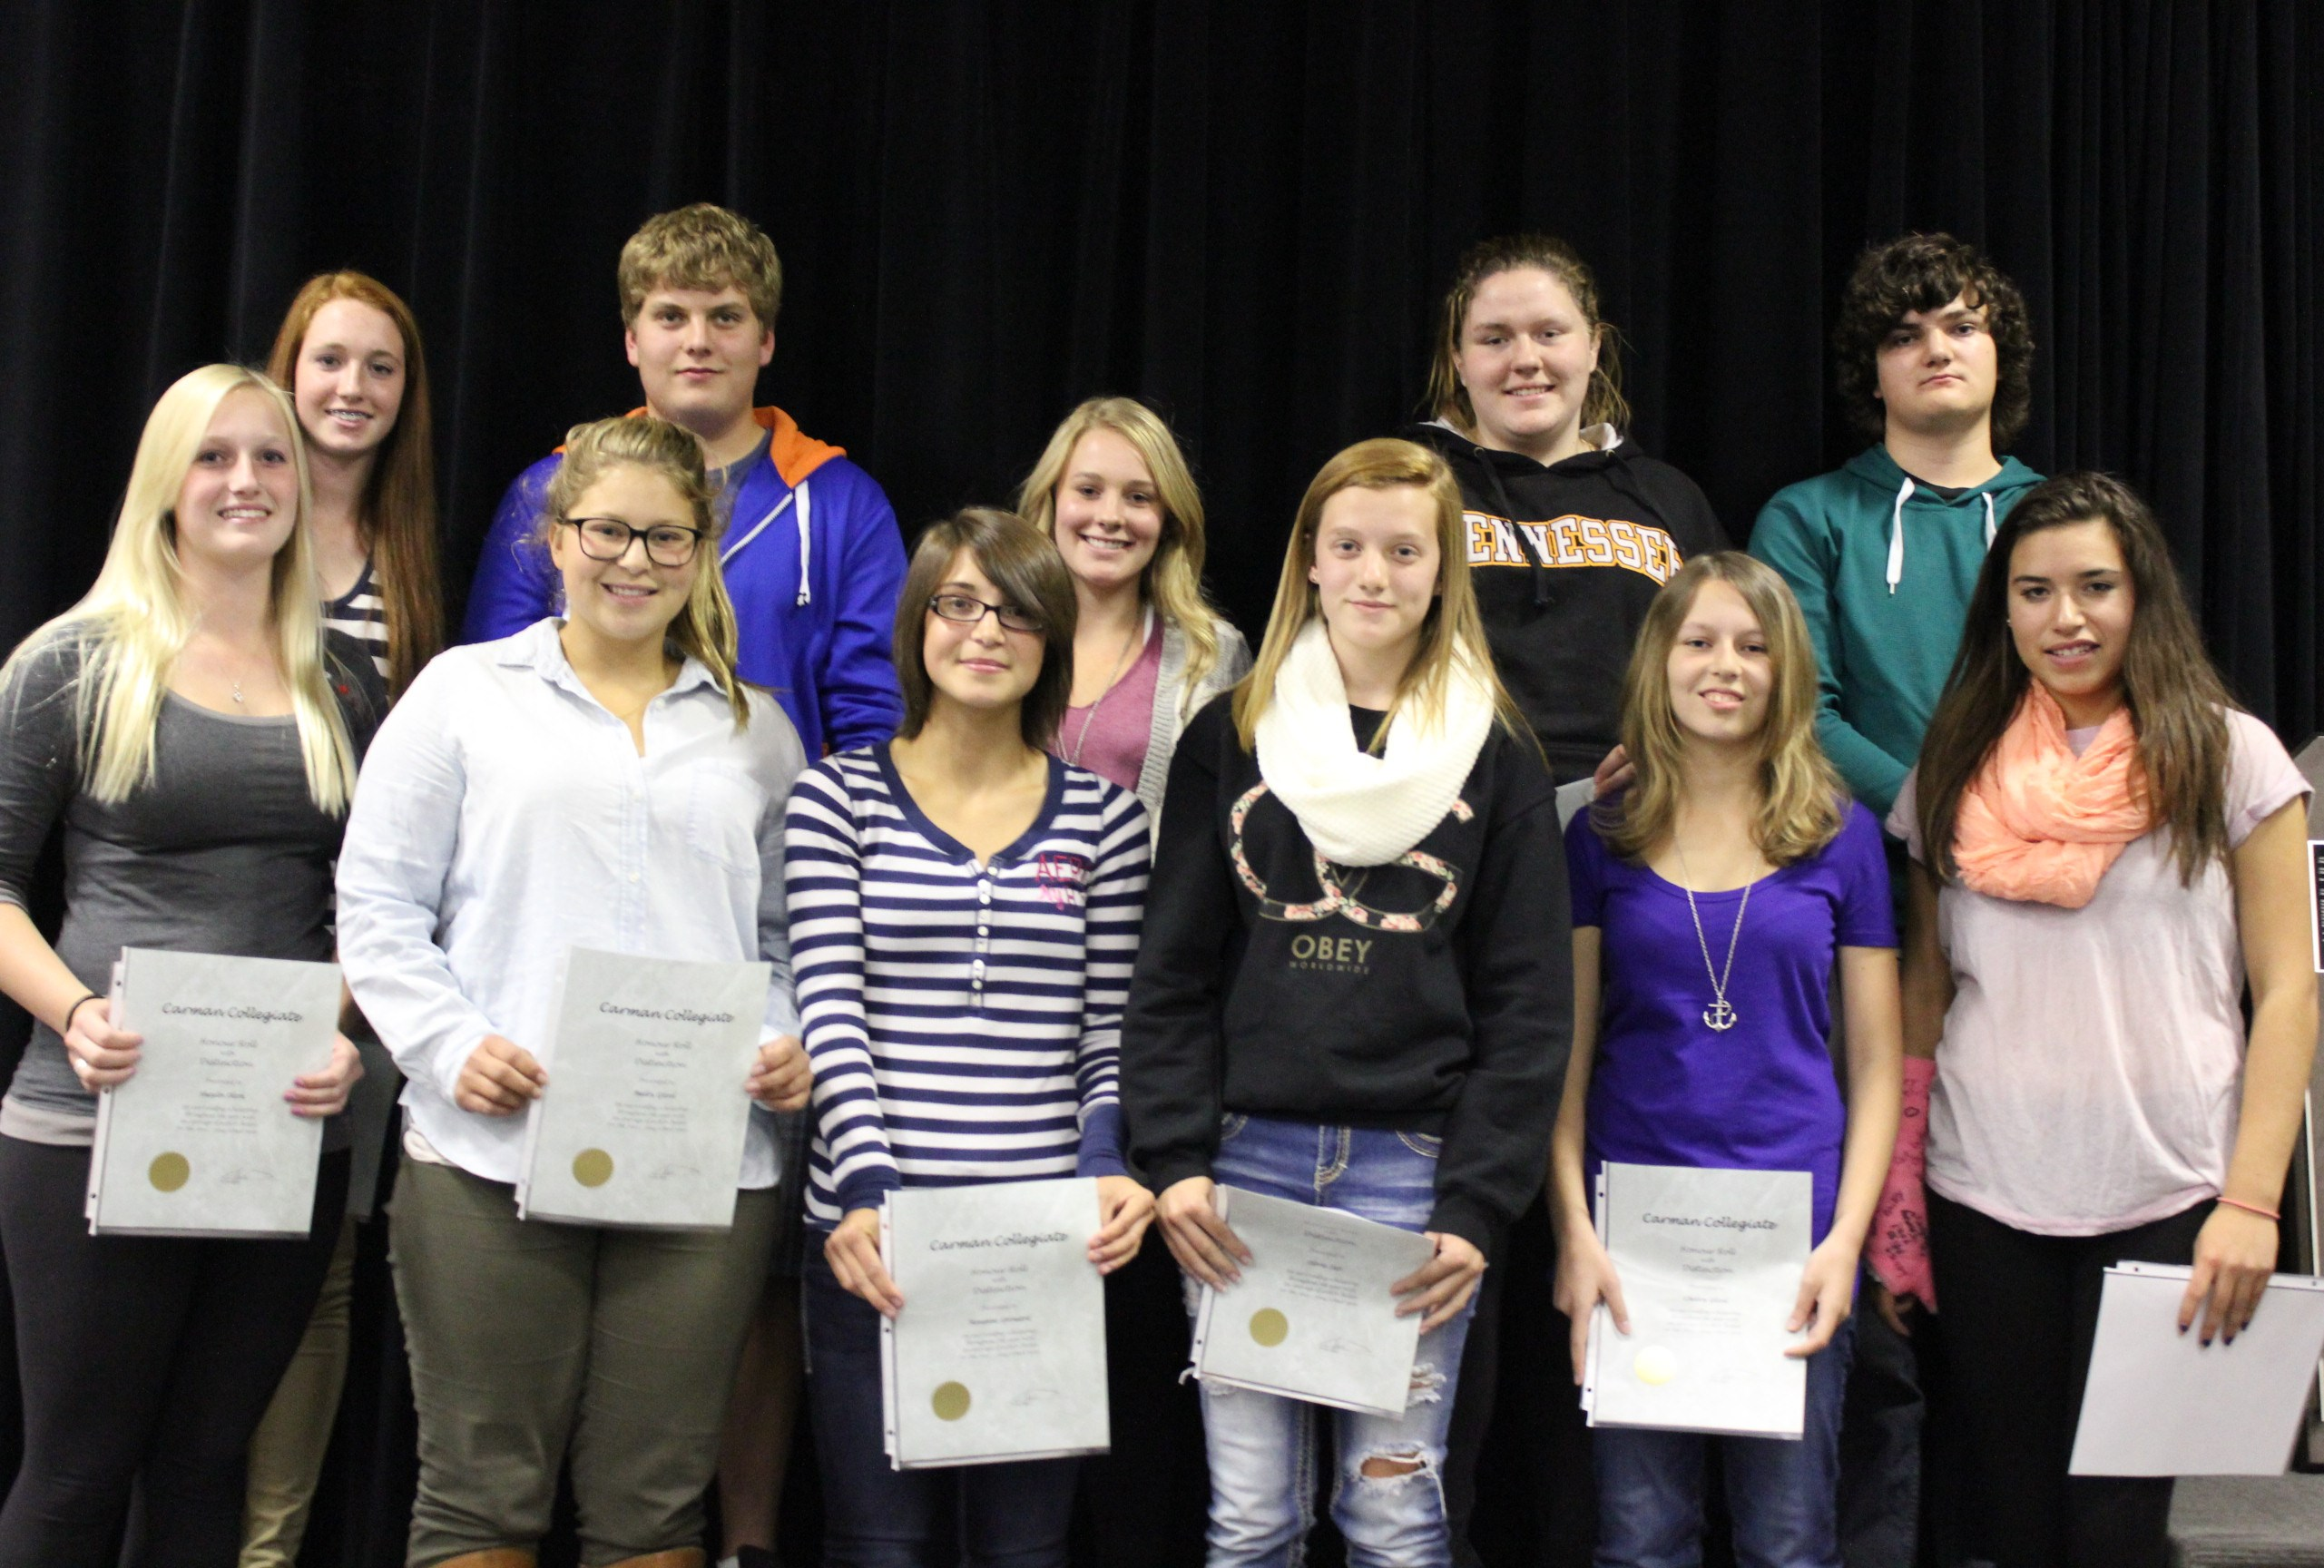 2014 09 18 - CC Honour Roll Students2